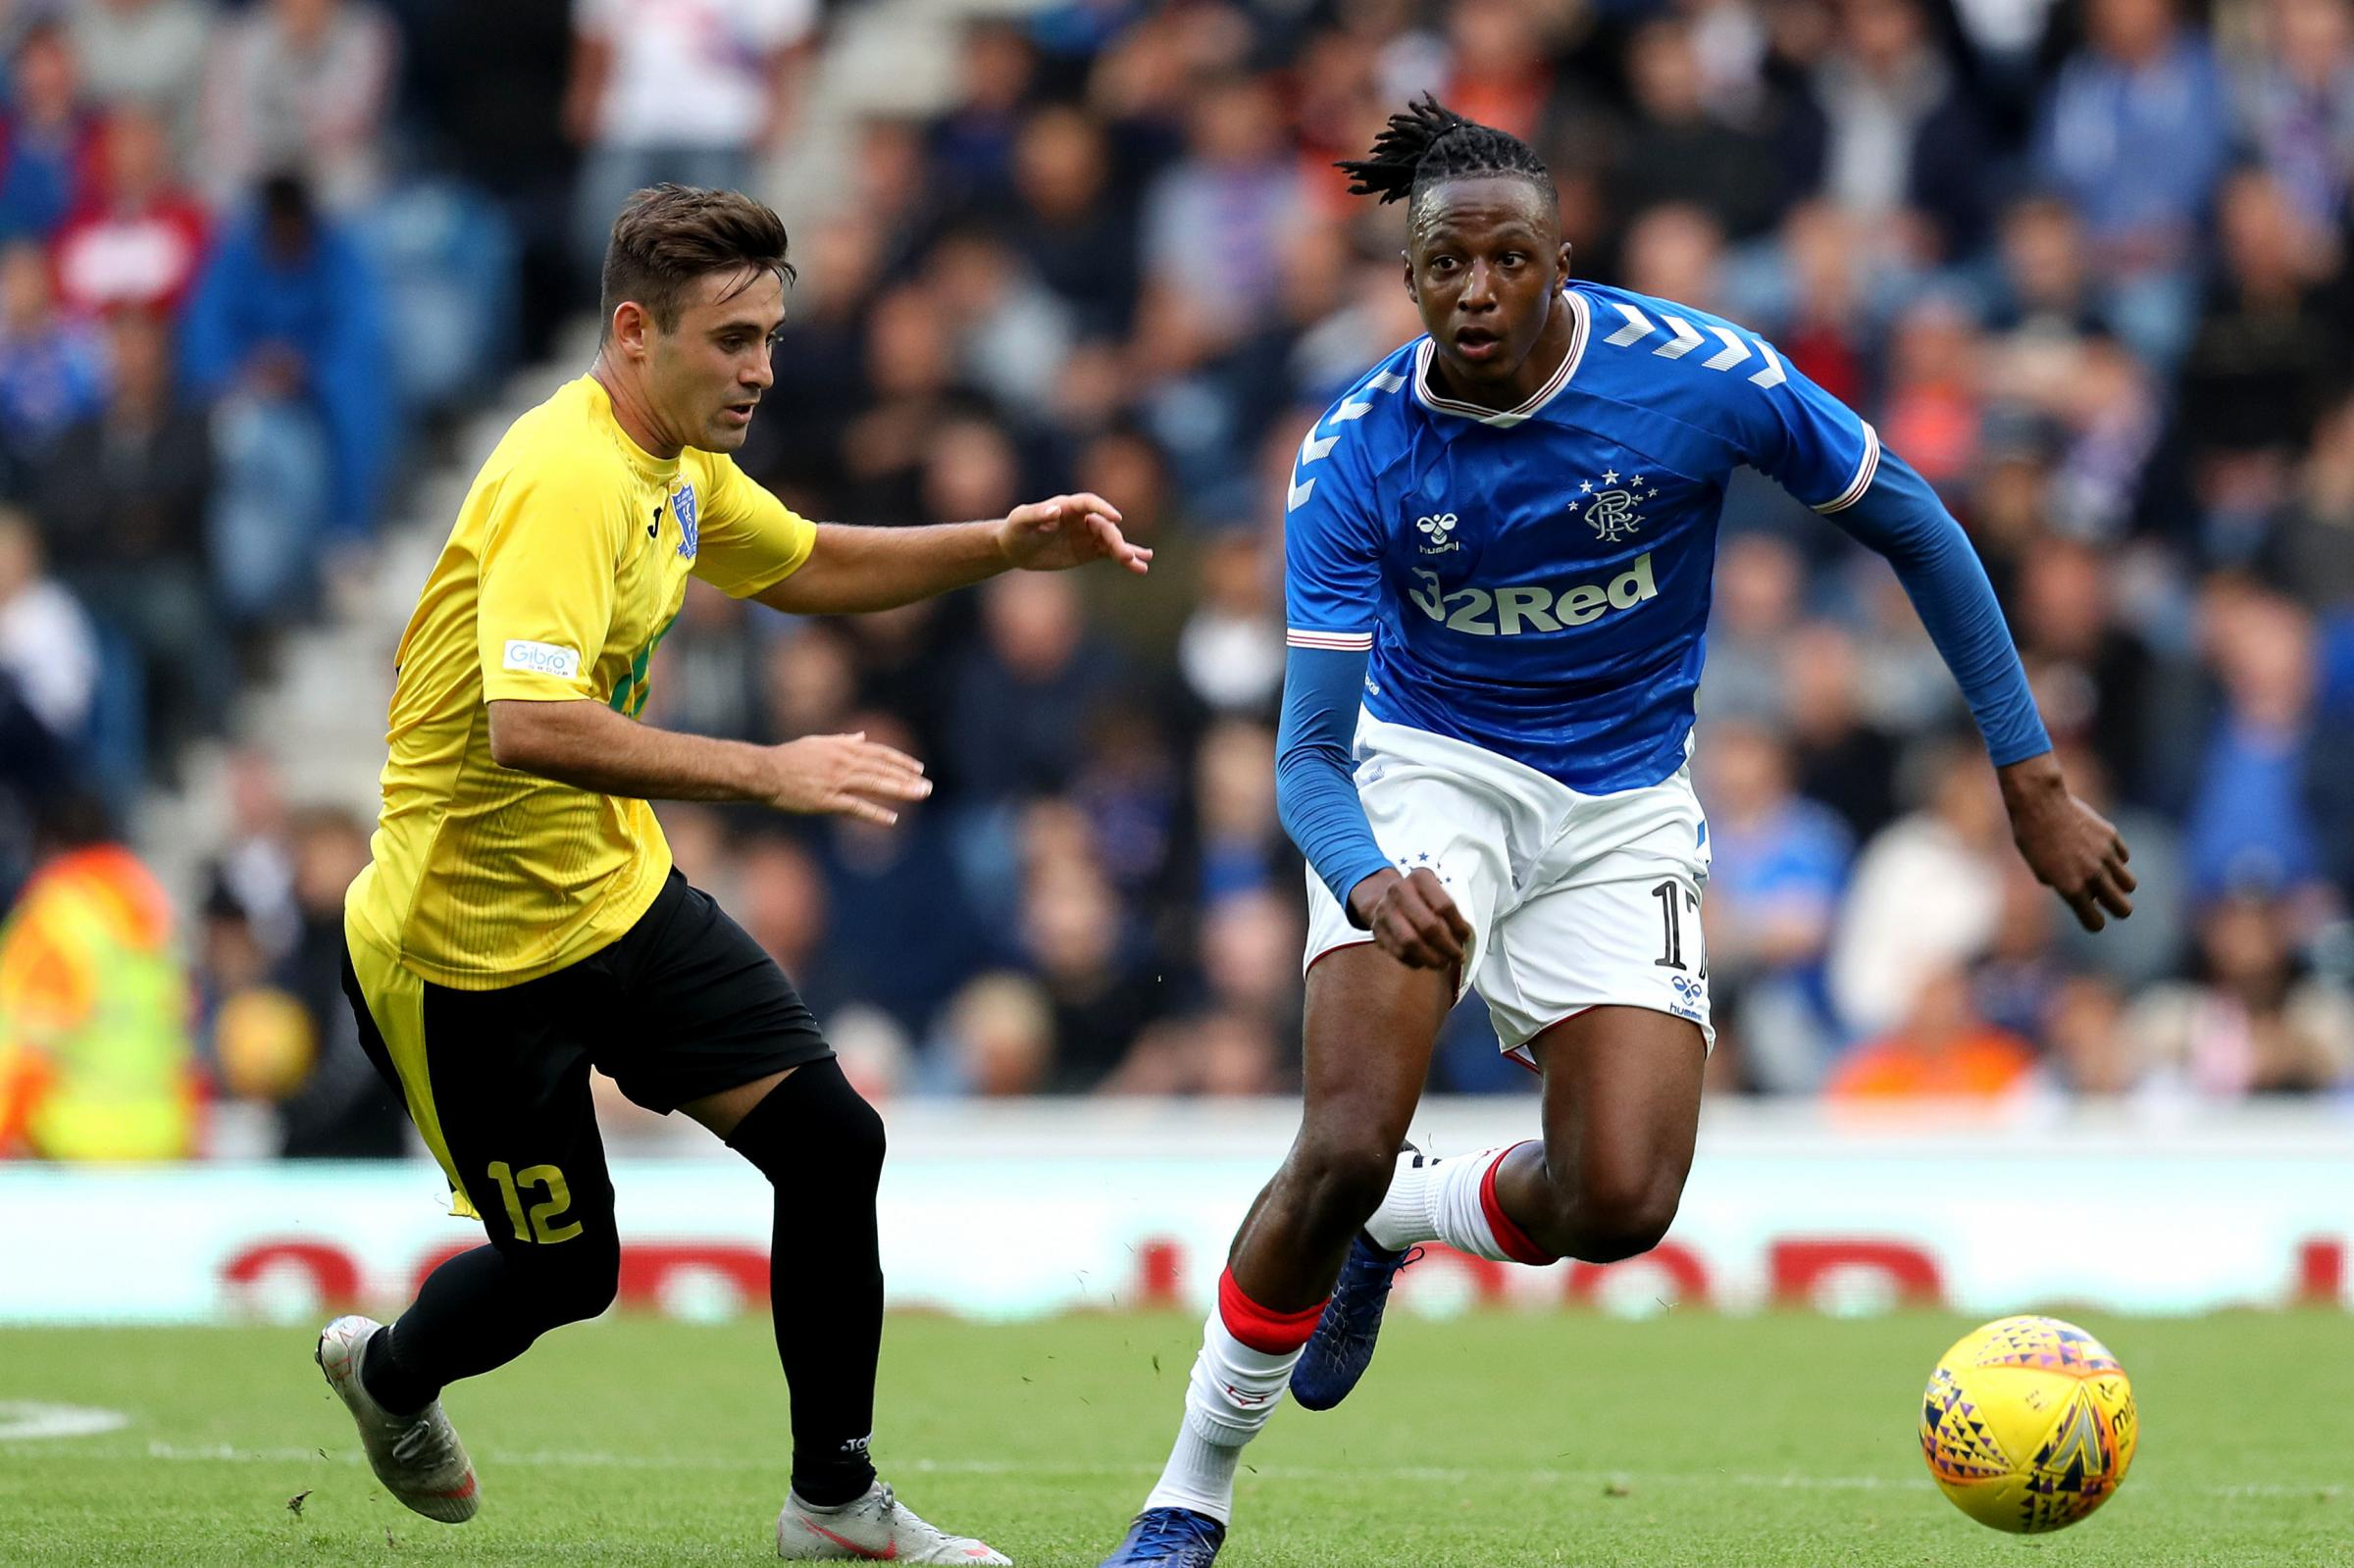 Steven Gerrard says Rangers bargain Joe Aribo can go right to the very top